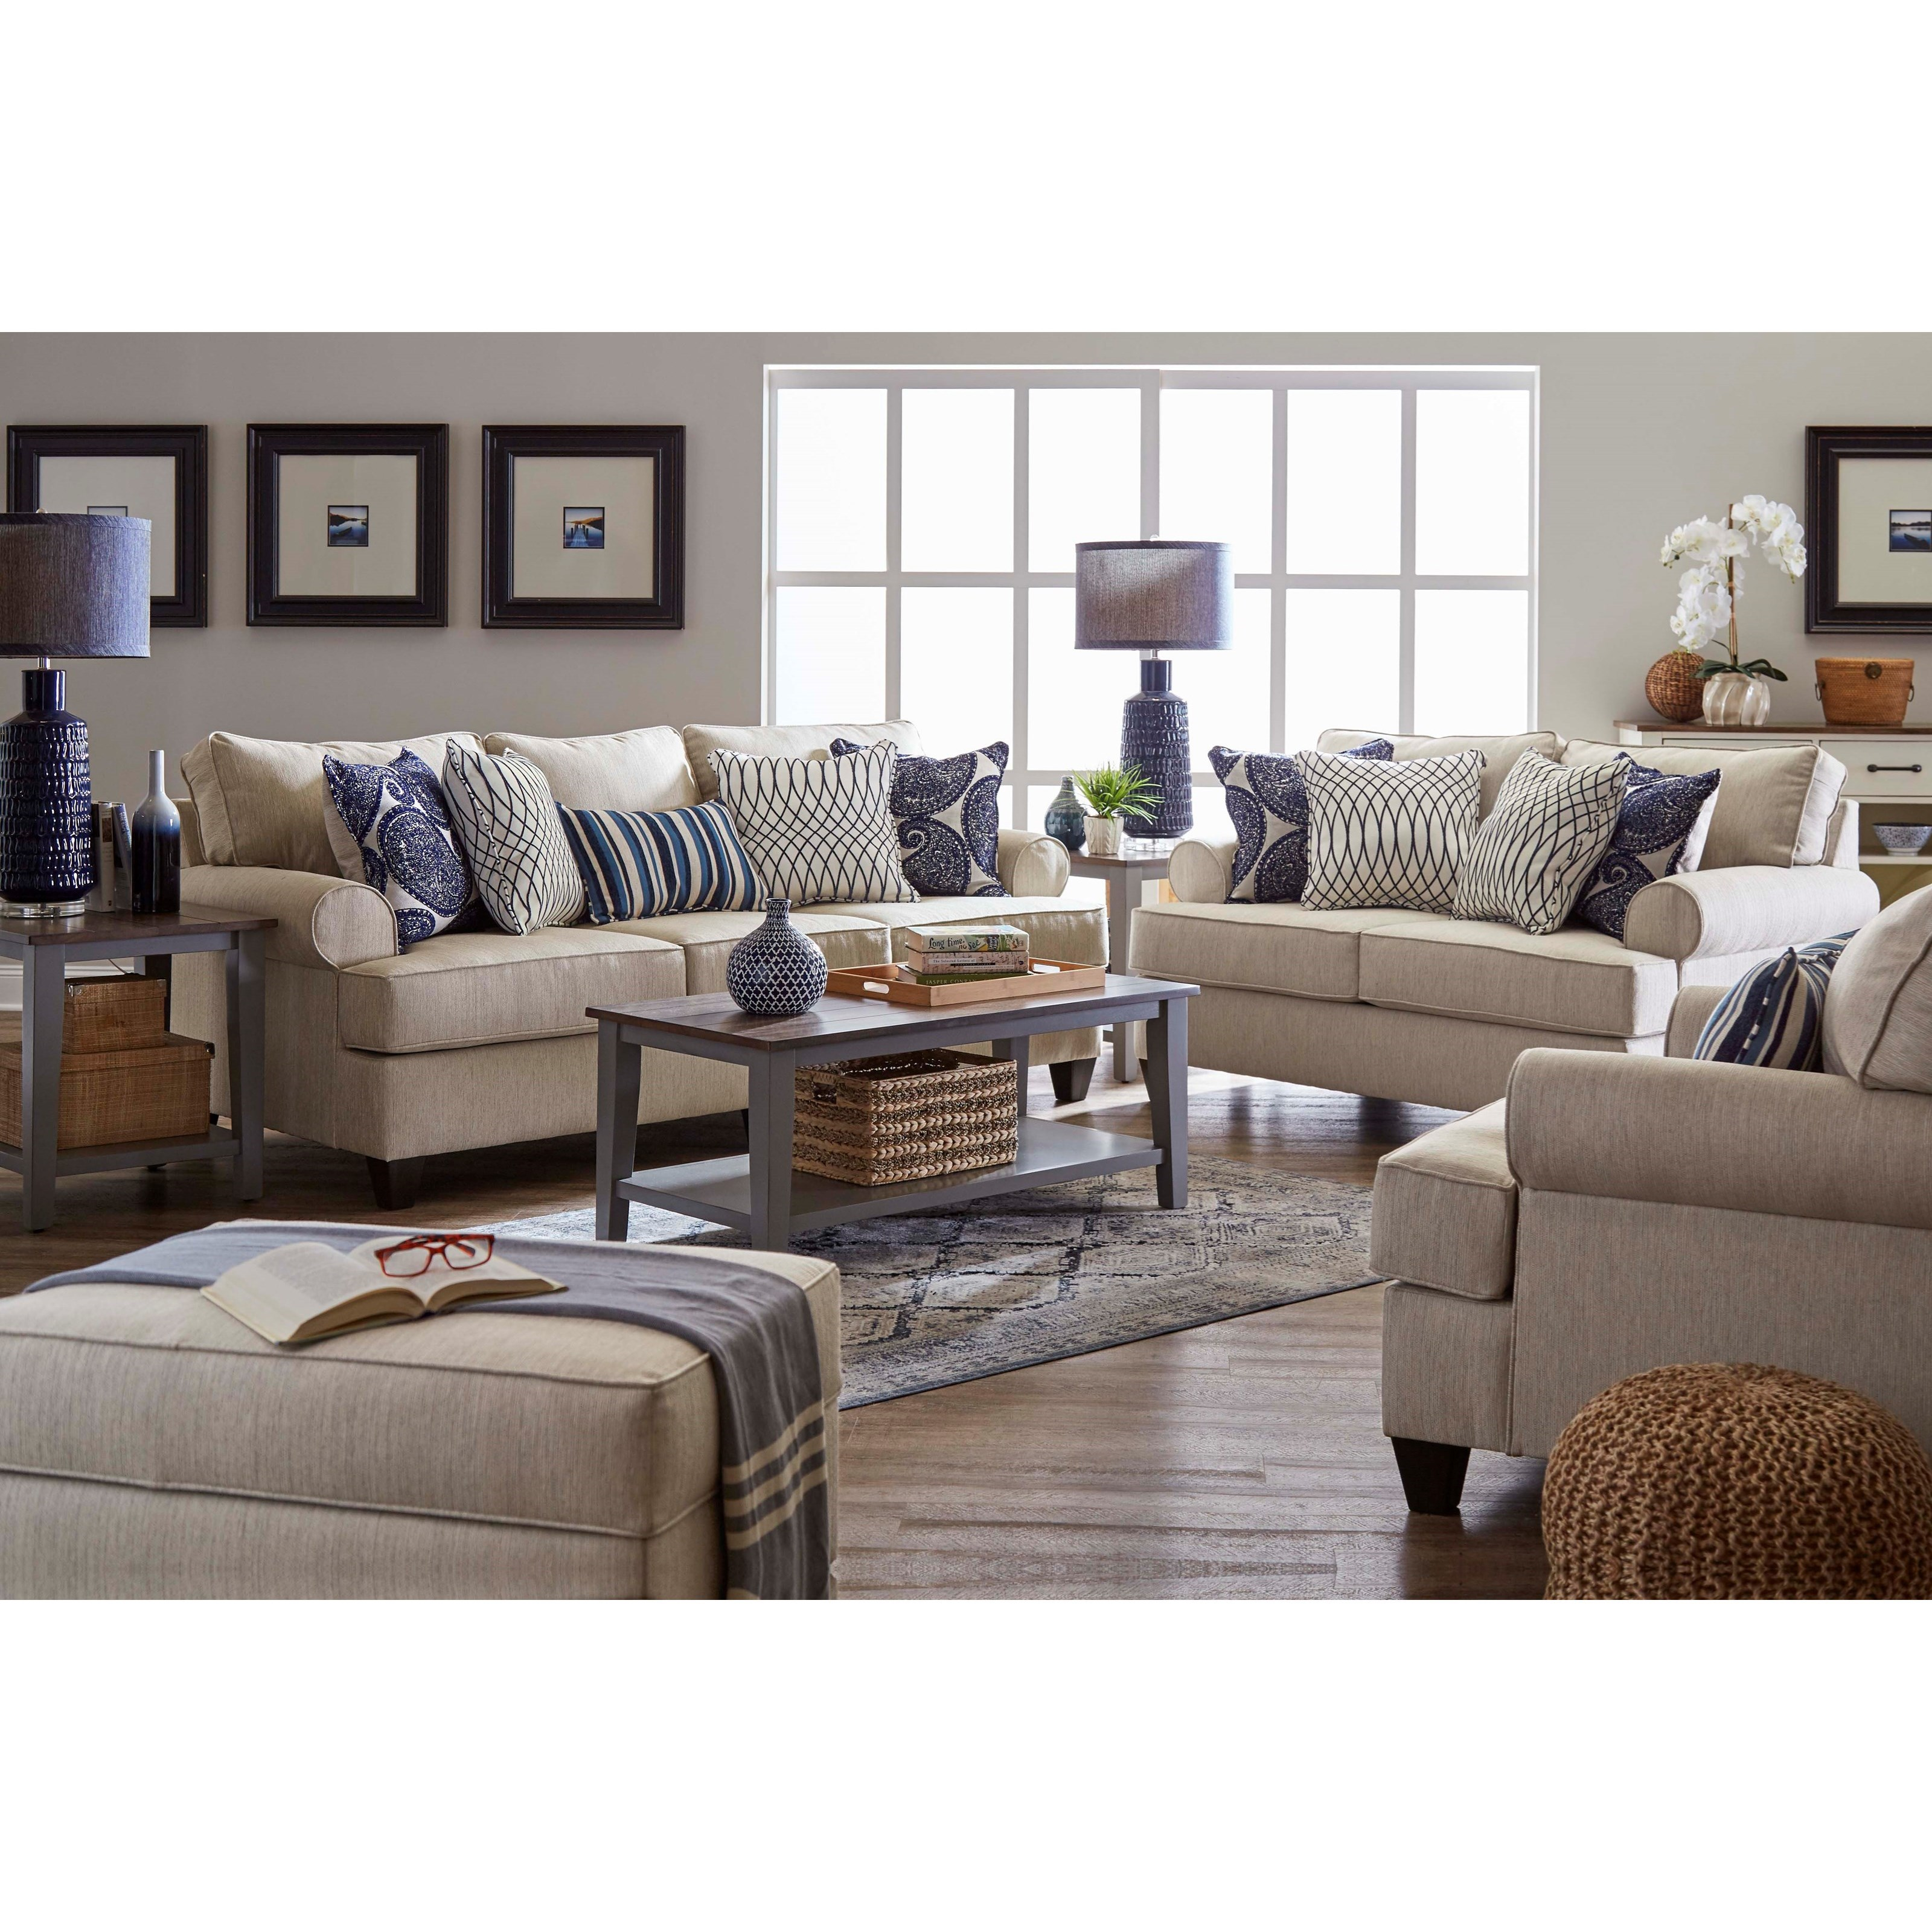 Anakena Living Room Group by Lane at Powell's Furniture and Mattress